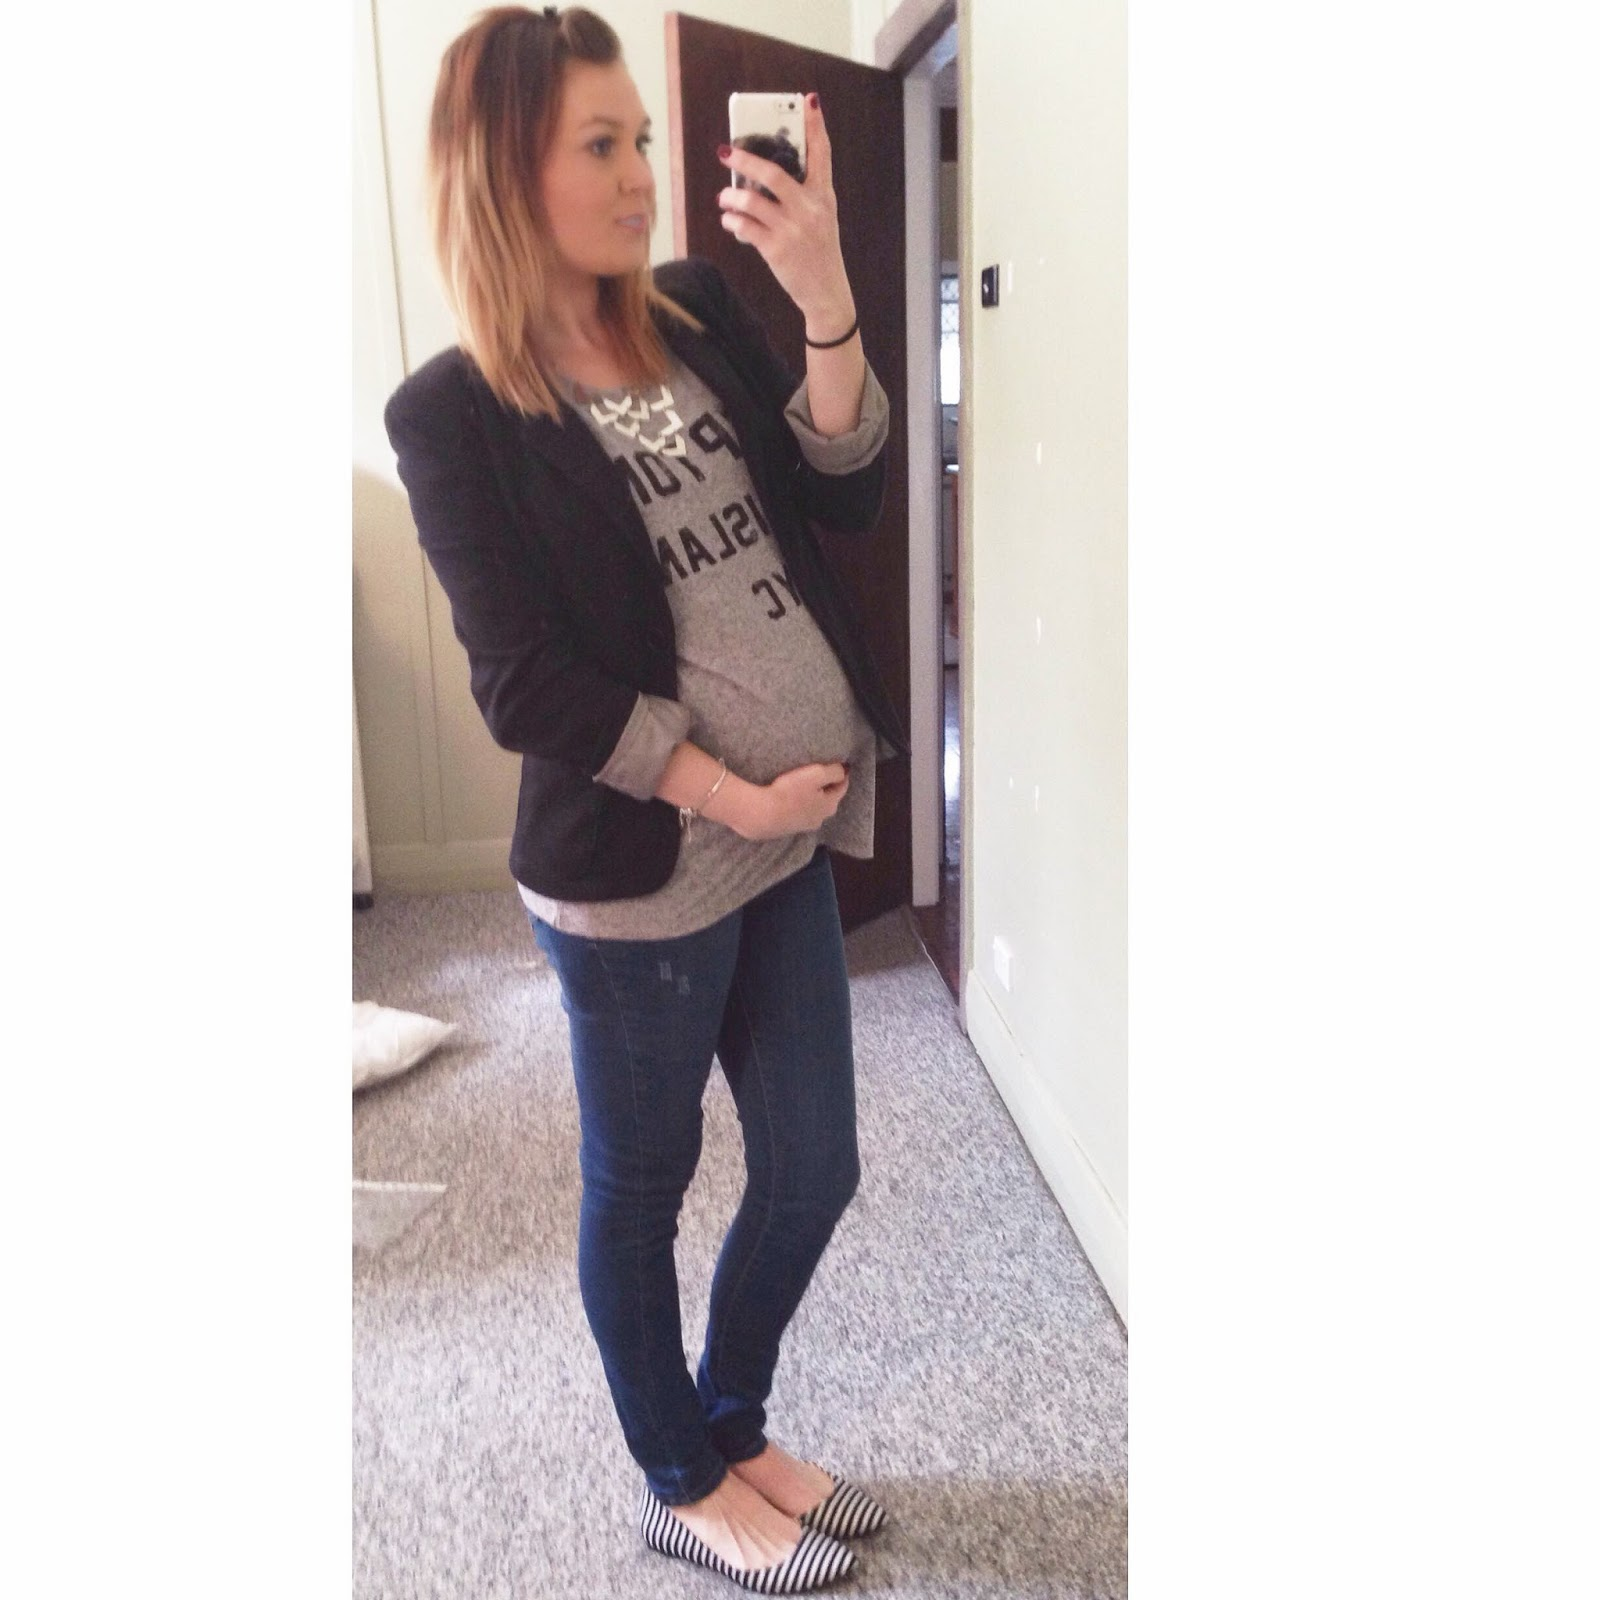 6 Tips for Beautiful and Affordable Maternity Style - by Laura